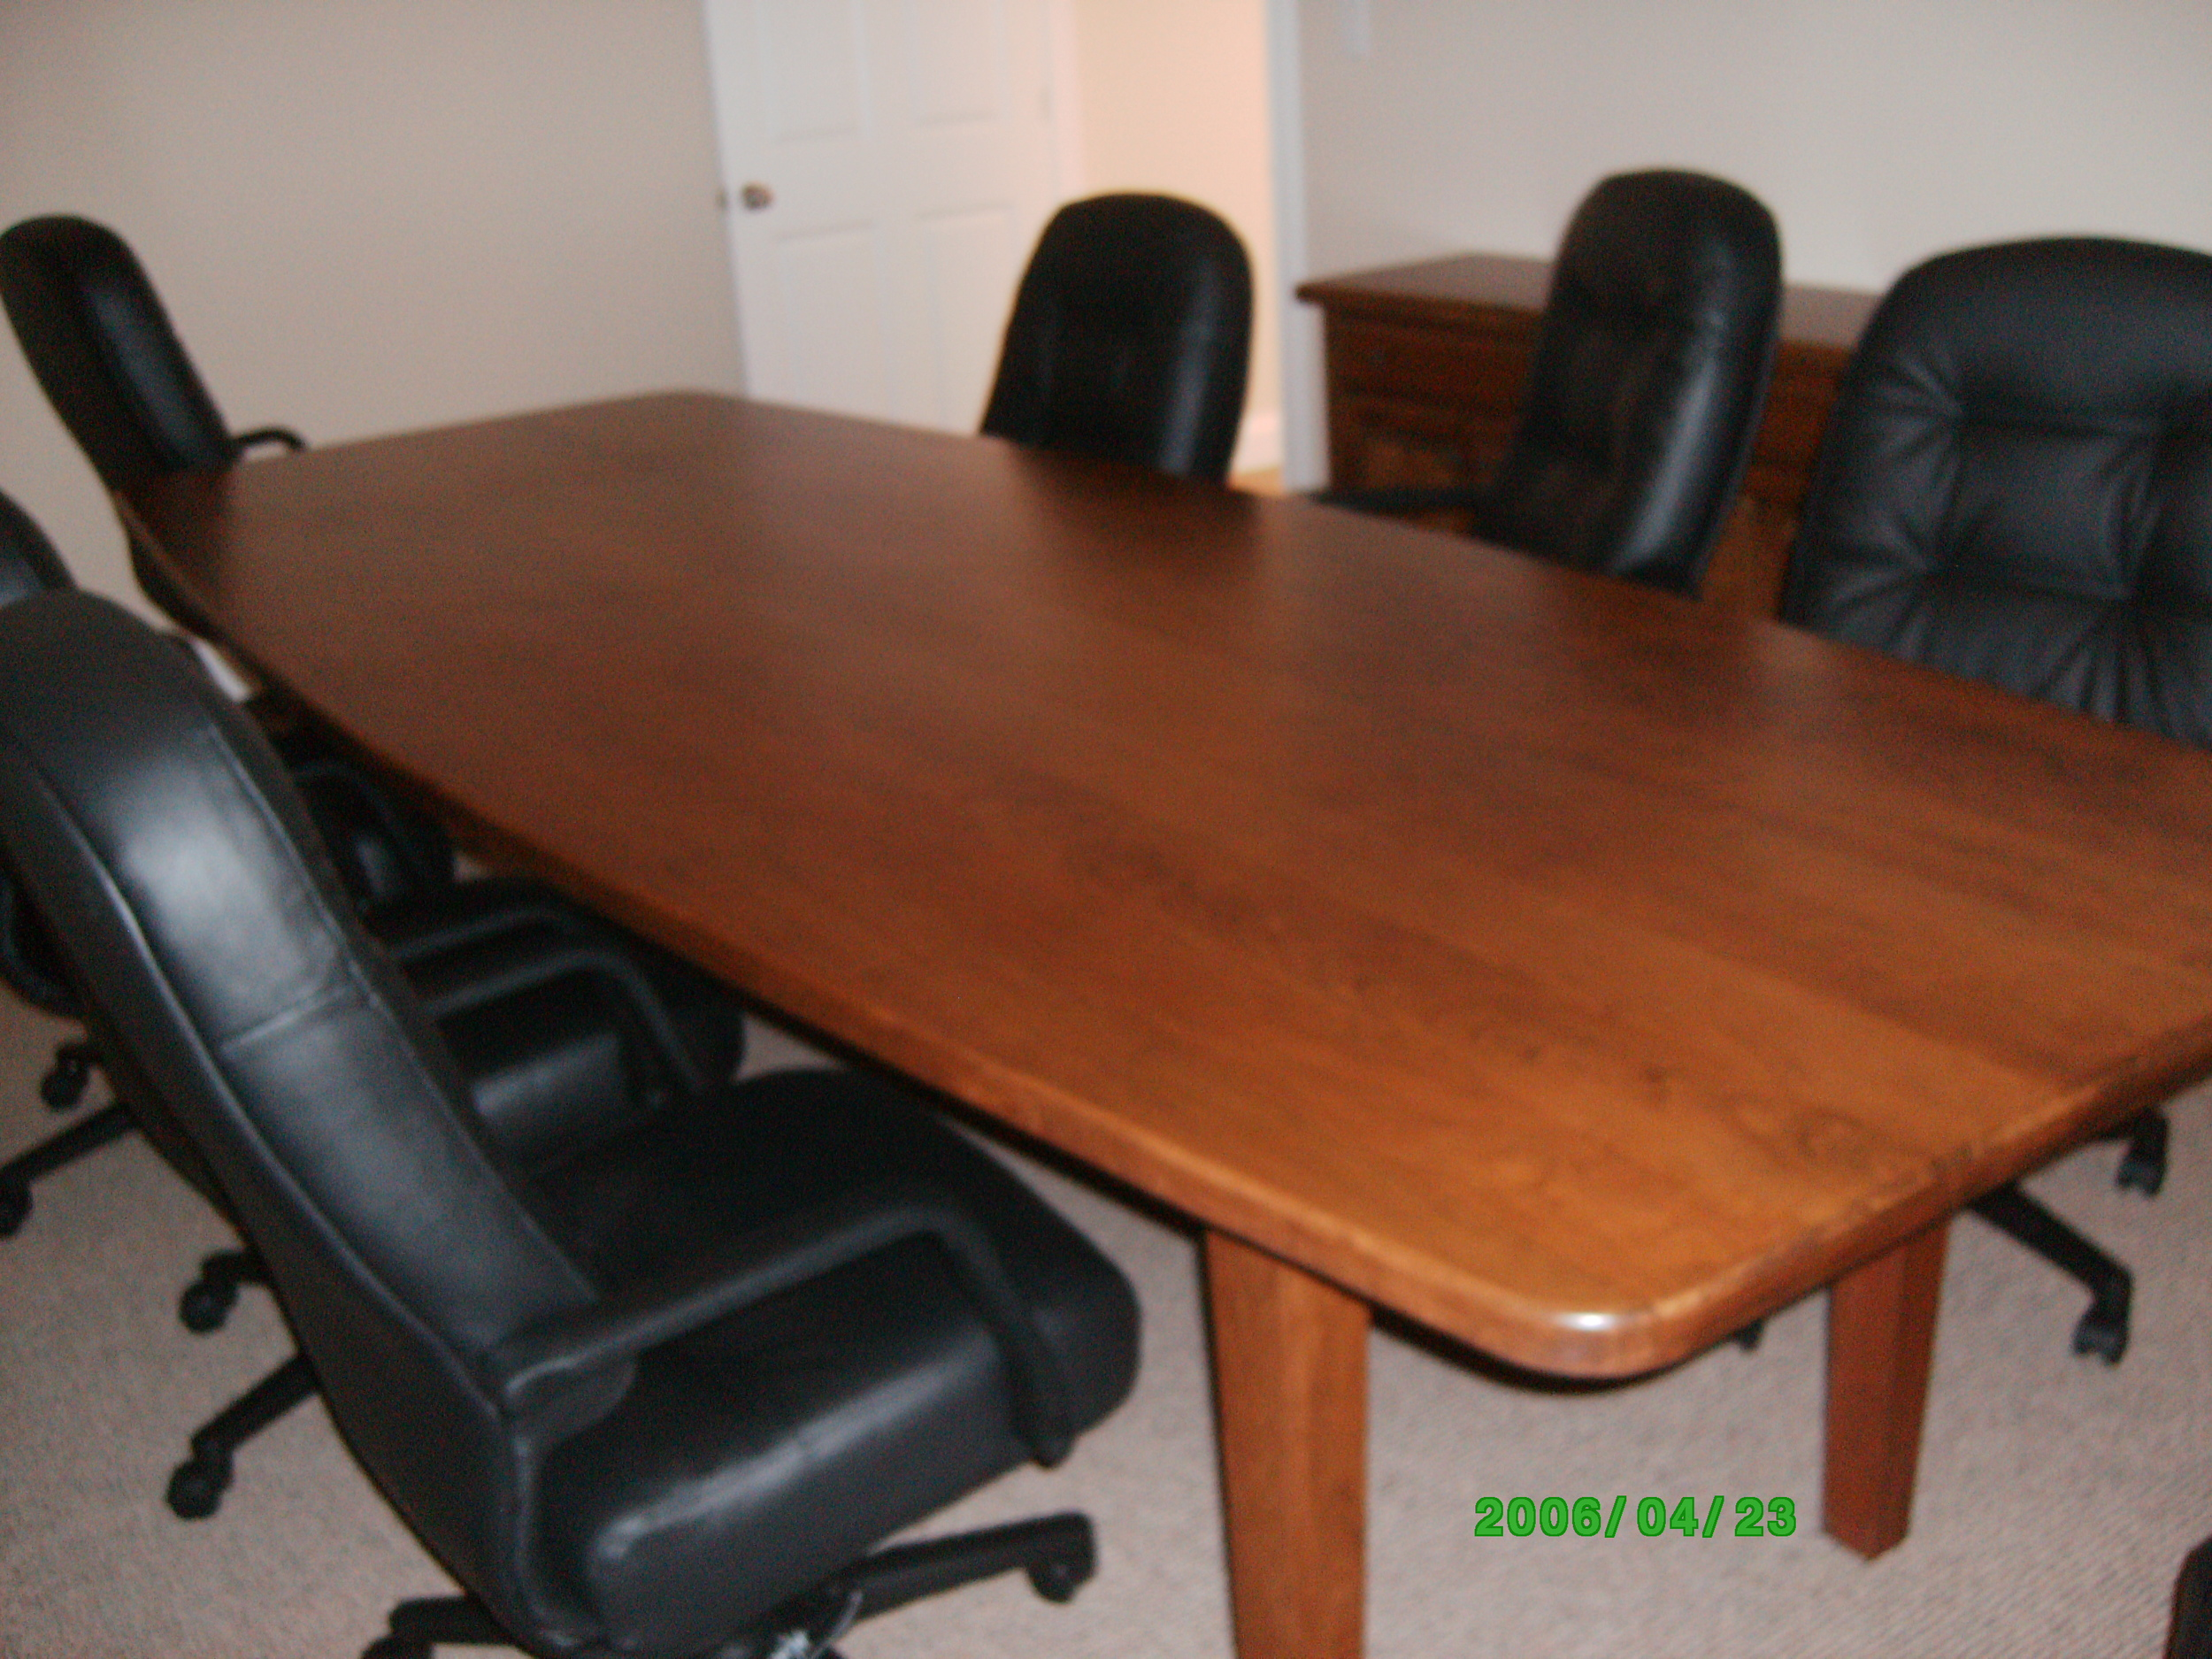 Hazen and Sawyer's cherry conference table